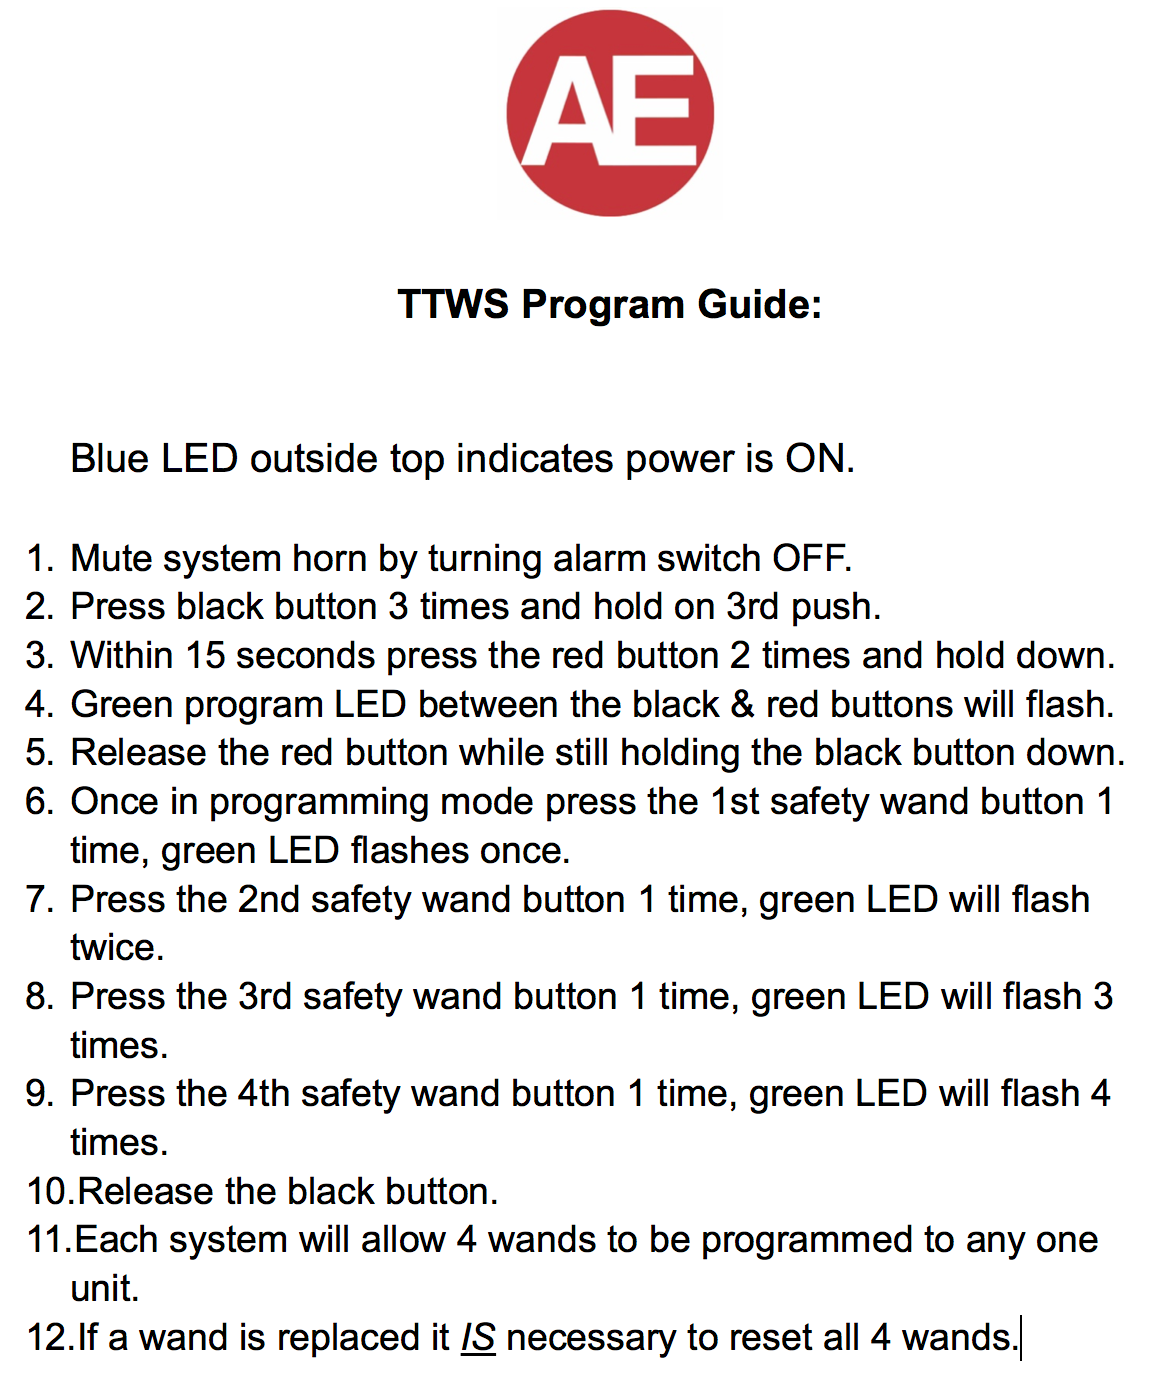 TTWS_Program_Guideb_pages.png